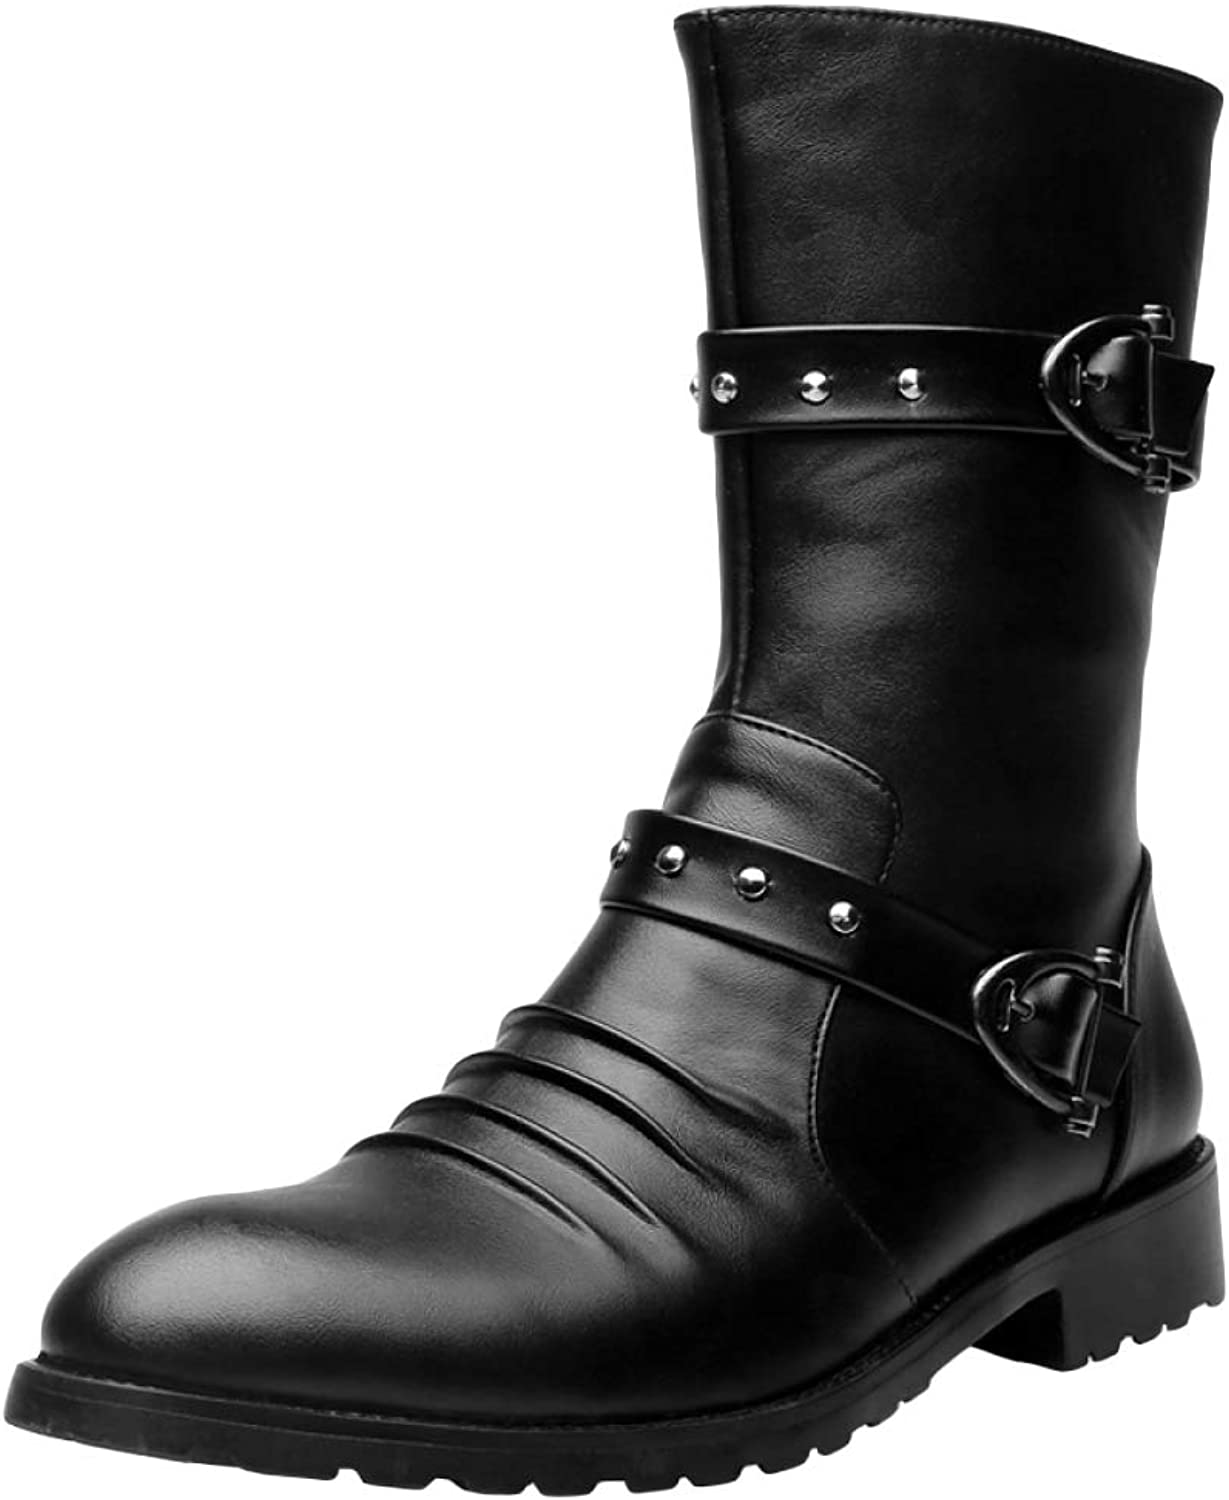 Men's Outdoor Army Military Combat Boots Trekking Hiking Long Tube Boots PU Martin Boot Riding High Tops shoes,Black,40